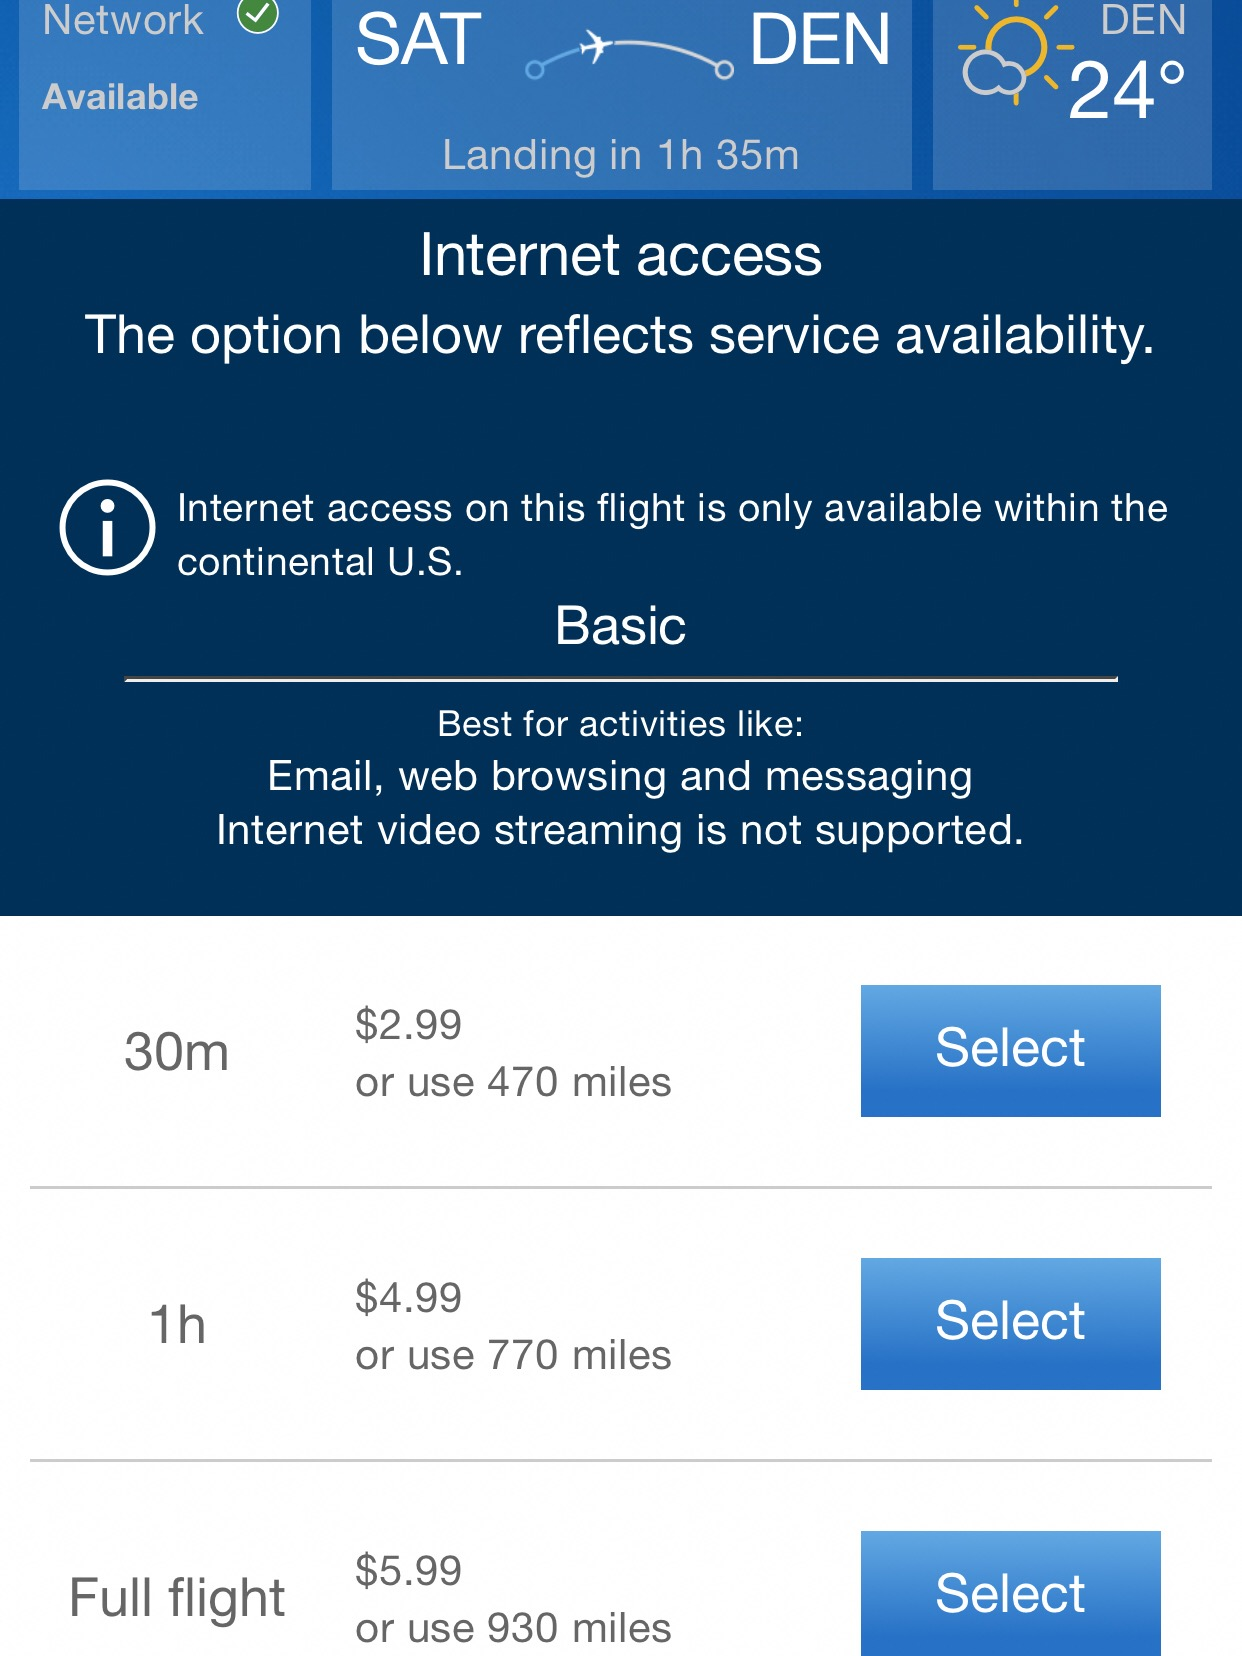 Internet connectivity was available for purchase or with miles.